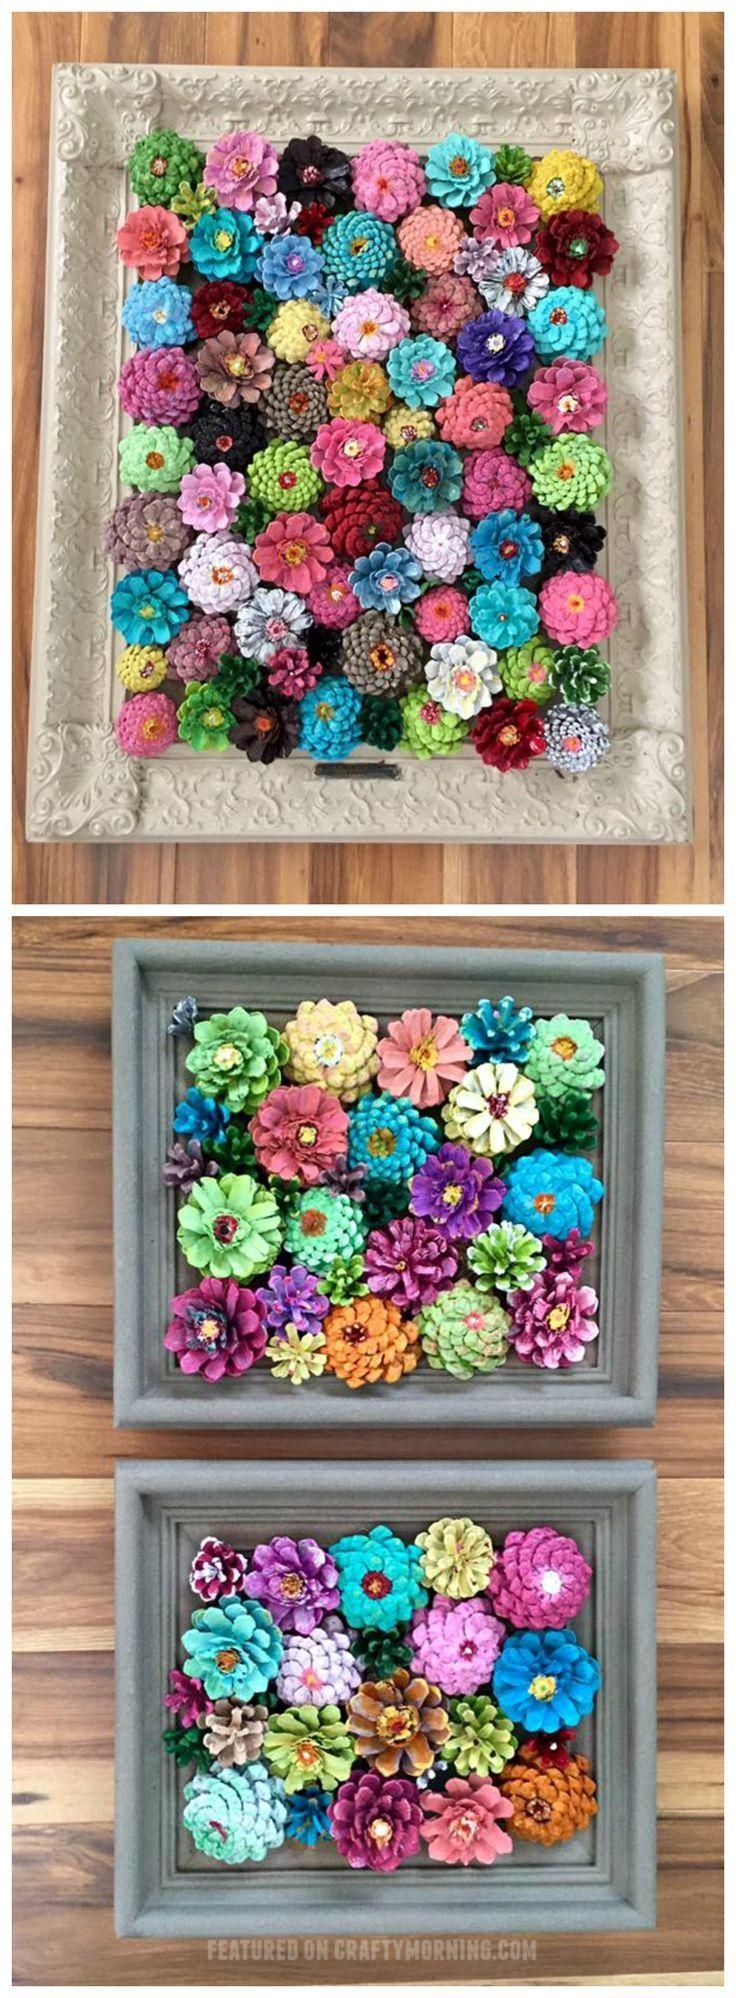 Best 25+ Pine Cone Art Ideas On Pinterest | Pinecone Crafts Kids With Pine Cone Wall Art (View 9 of 20)